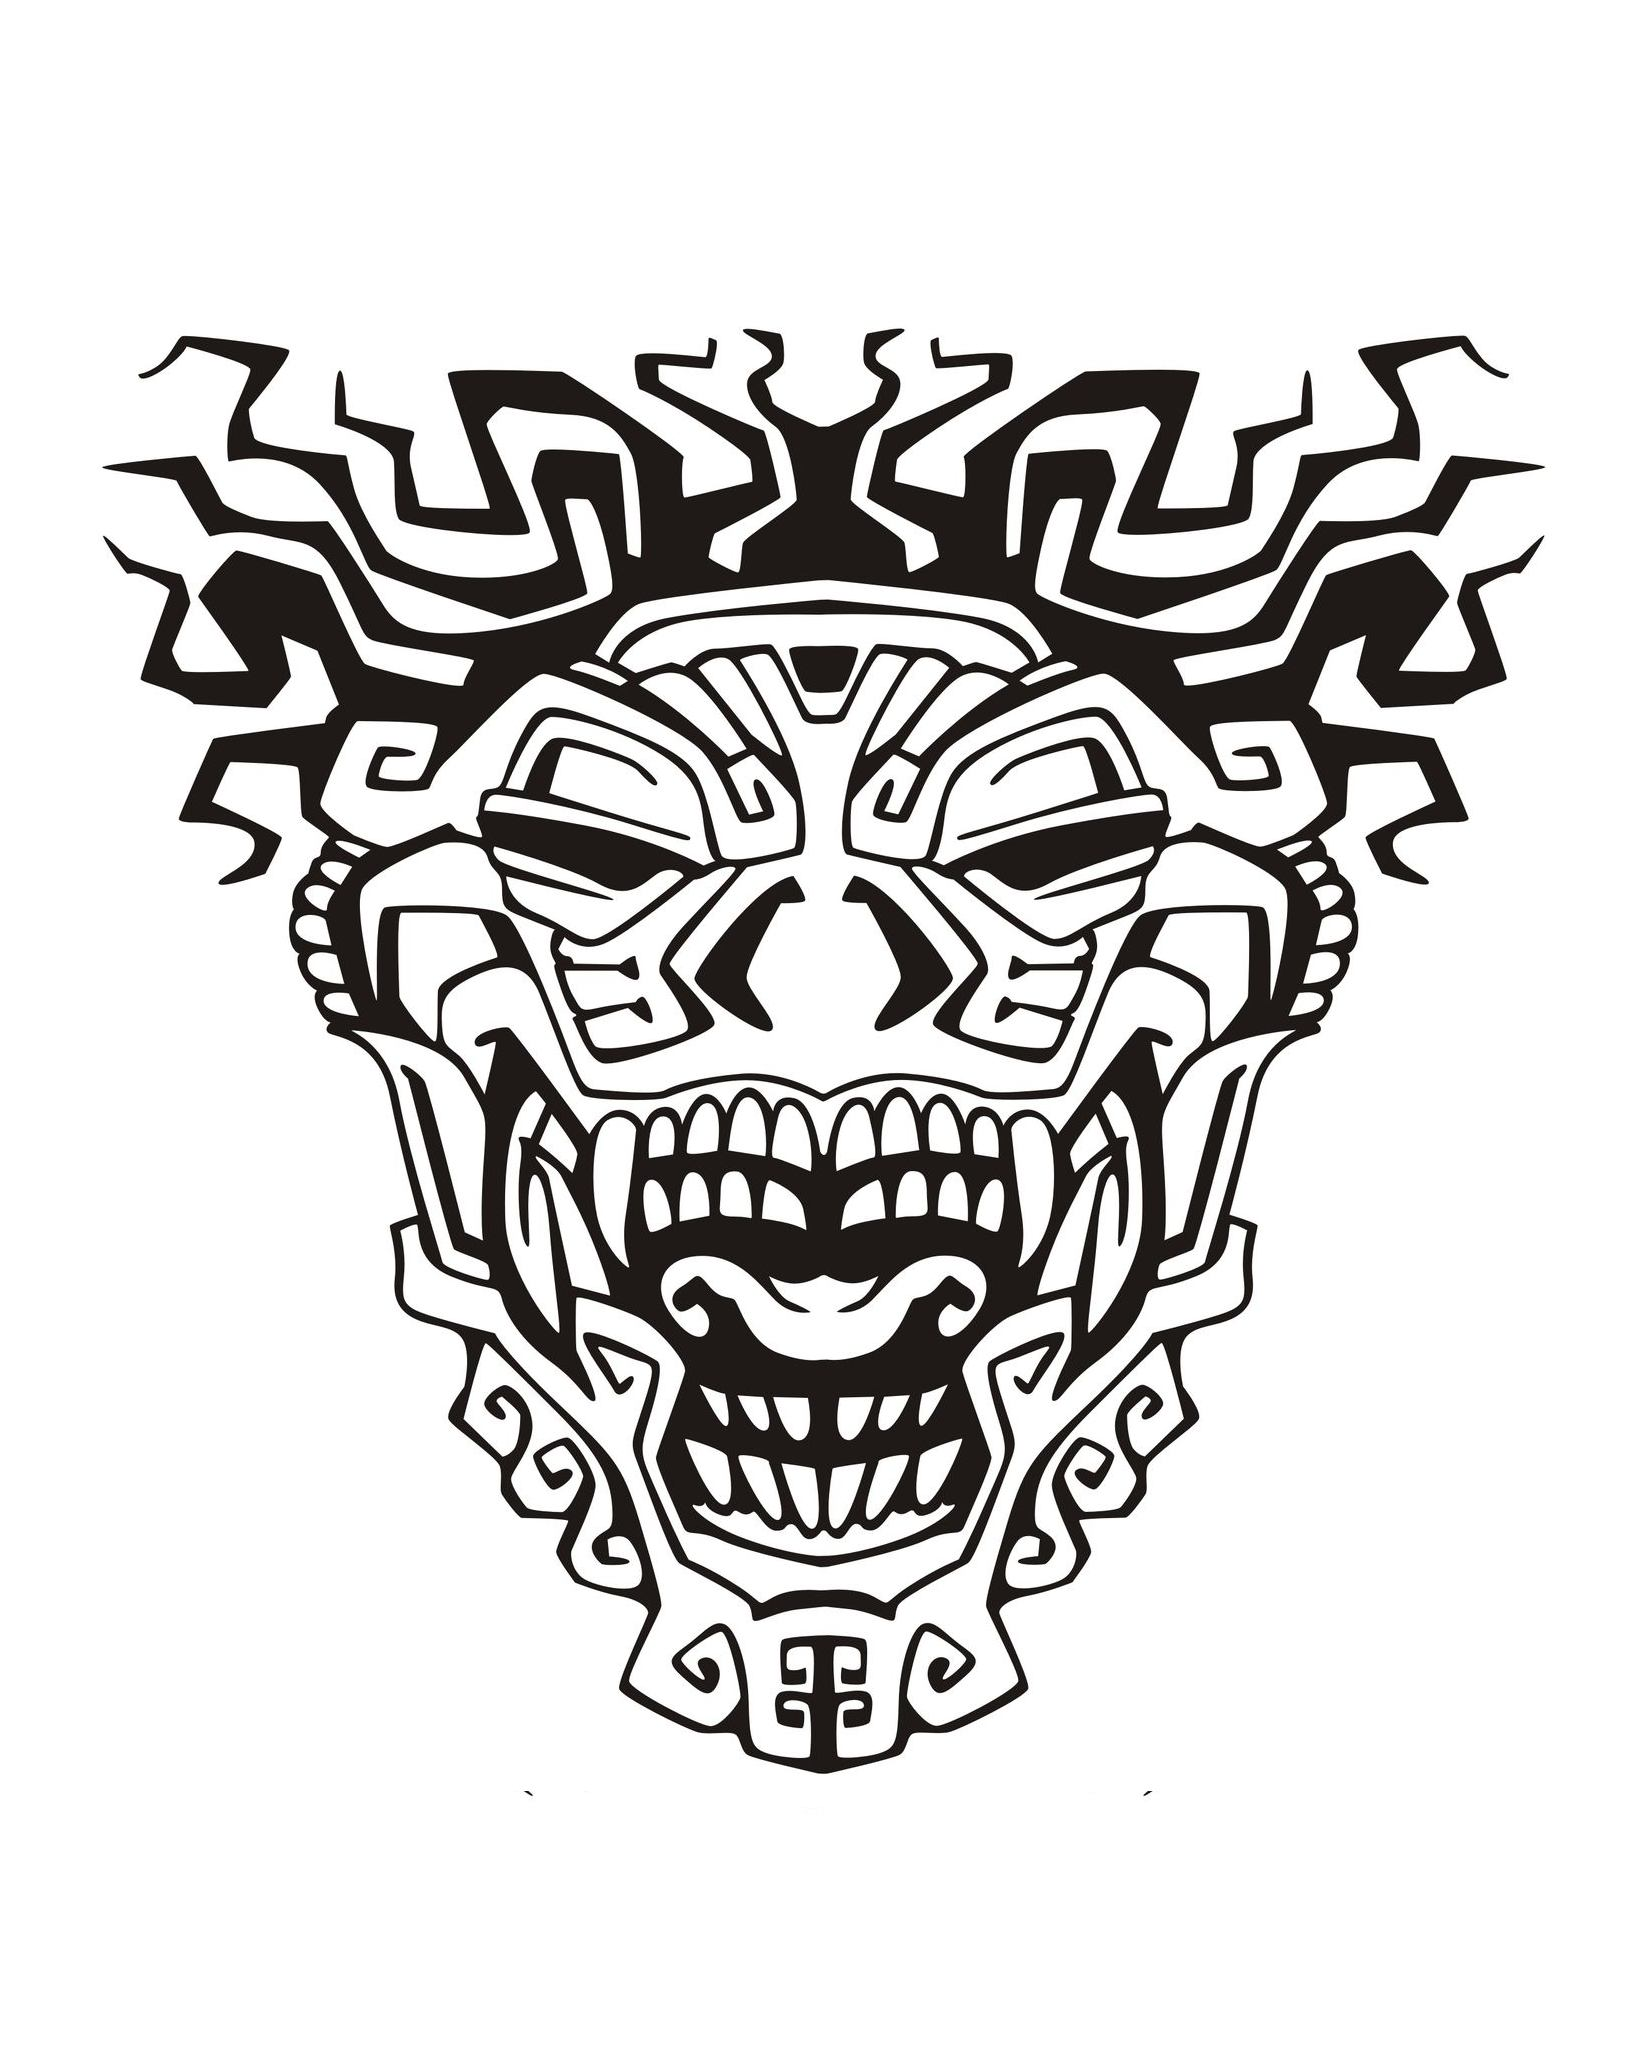 Simple Masks coloring page to download for free